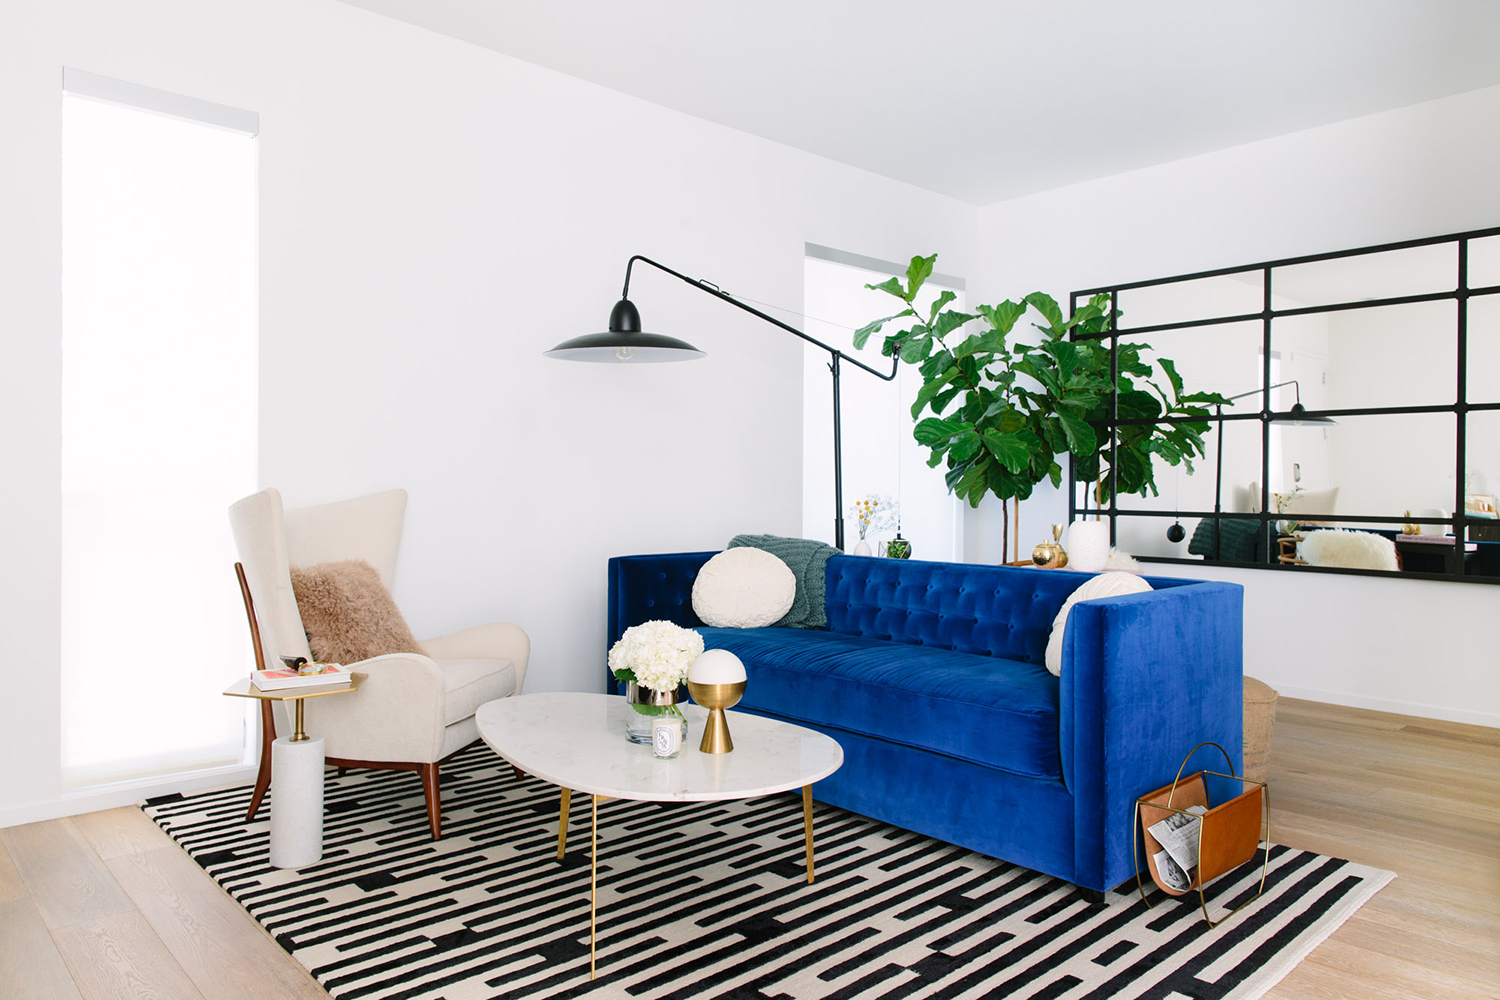 Blue Velvet Sofa with a black and white rug